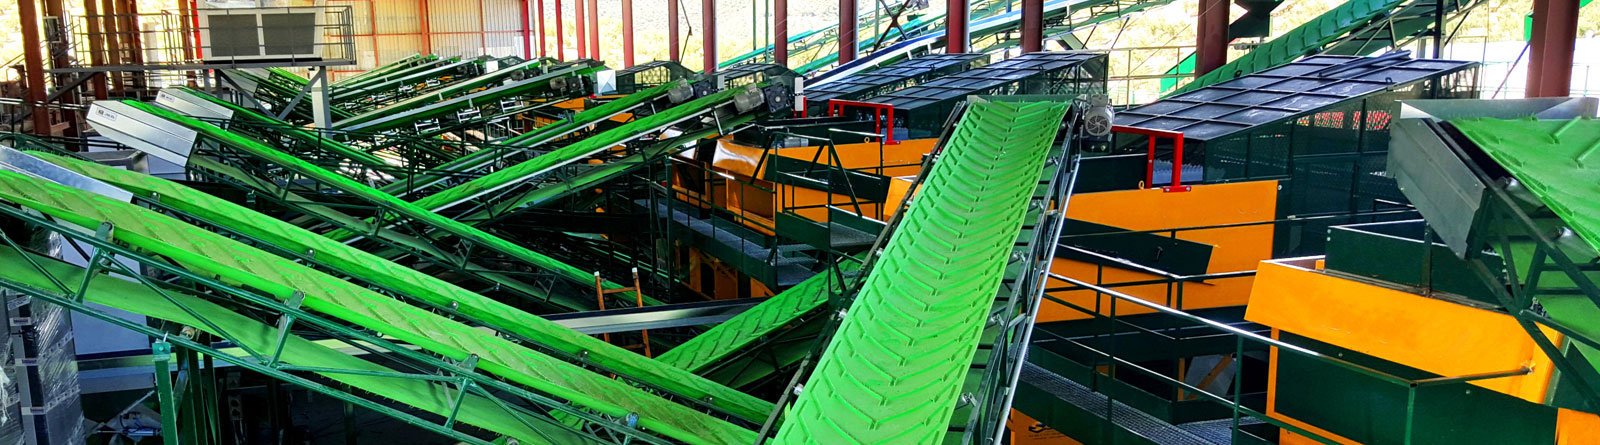 Agriculure & food processing conveyor belts